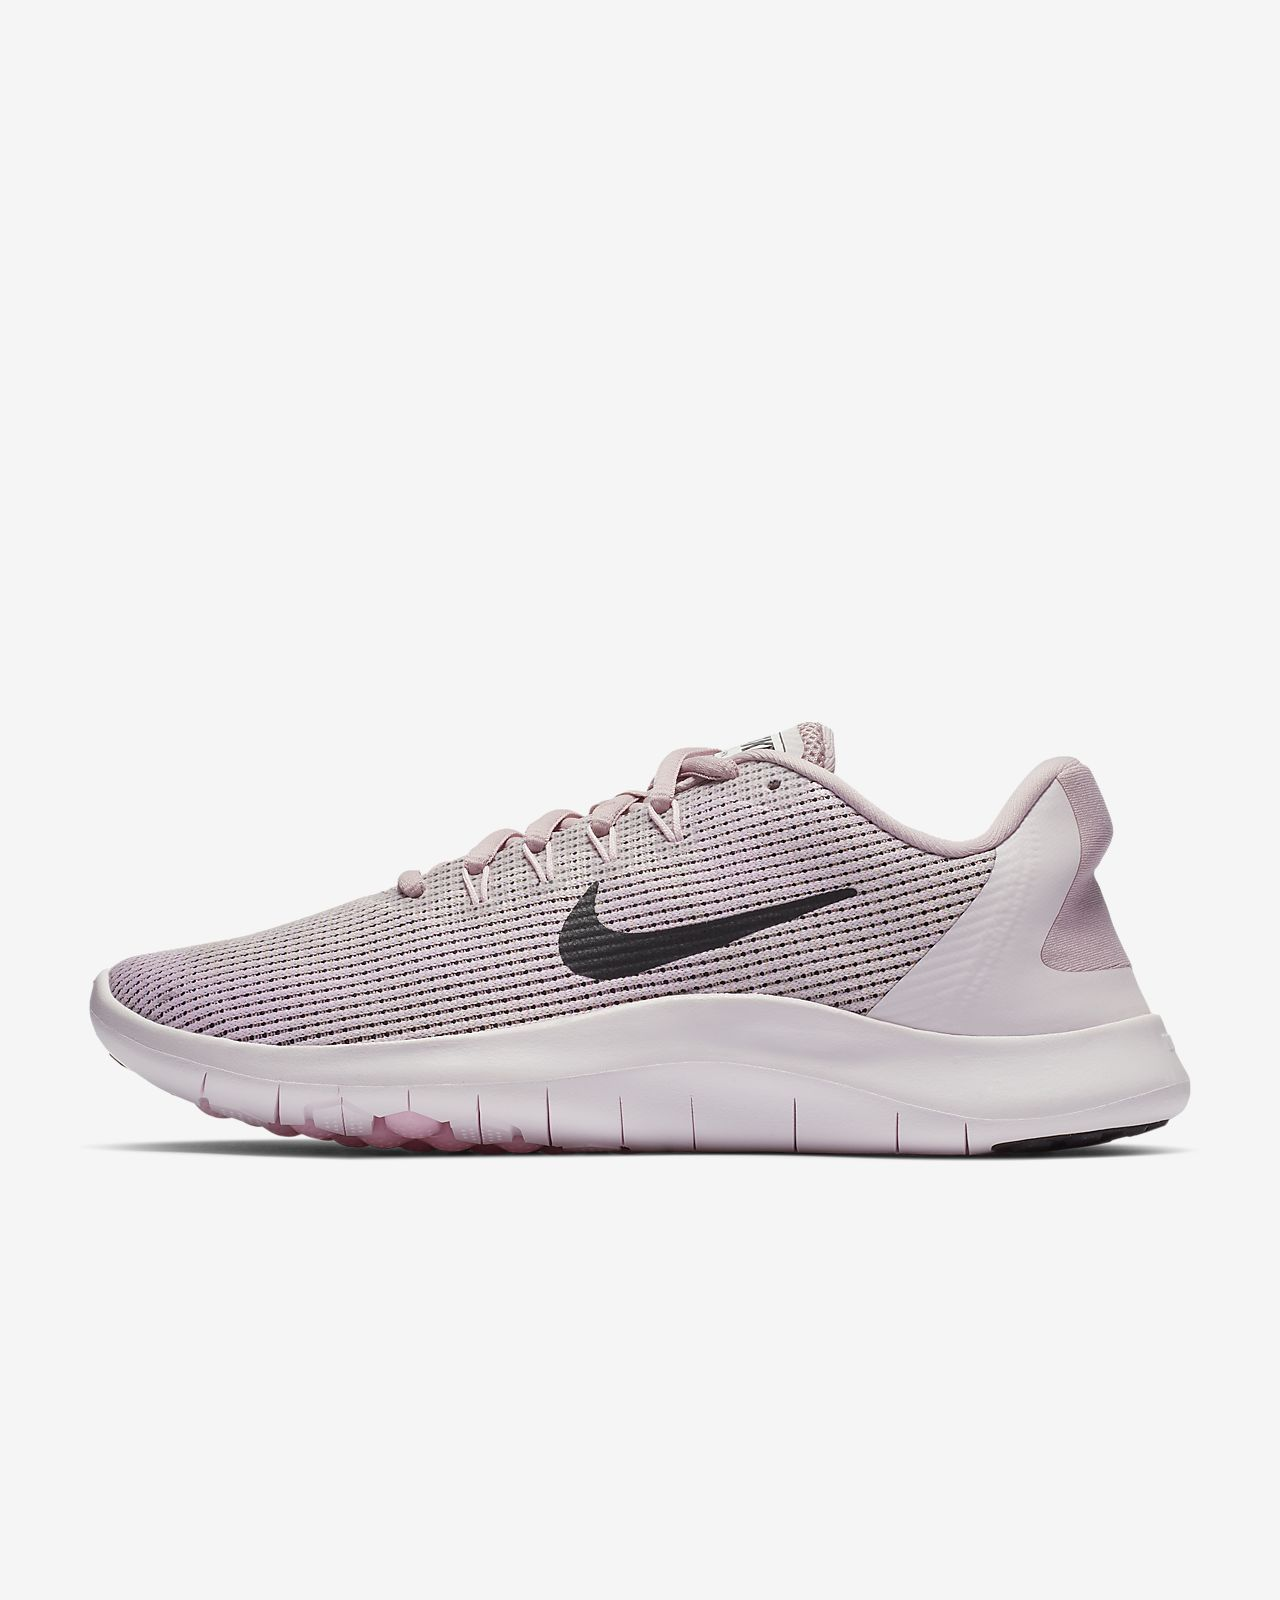 b6372ef02d8 Flex RN 2018 Women's Running Shoe in 2019 | Shoes | Nike flex, Nike ...